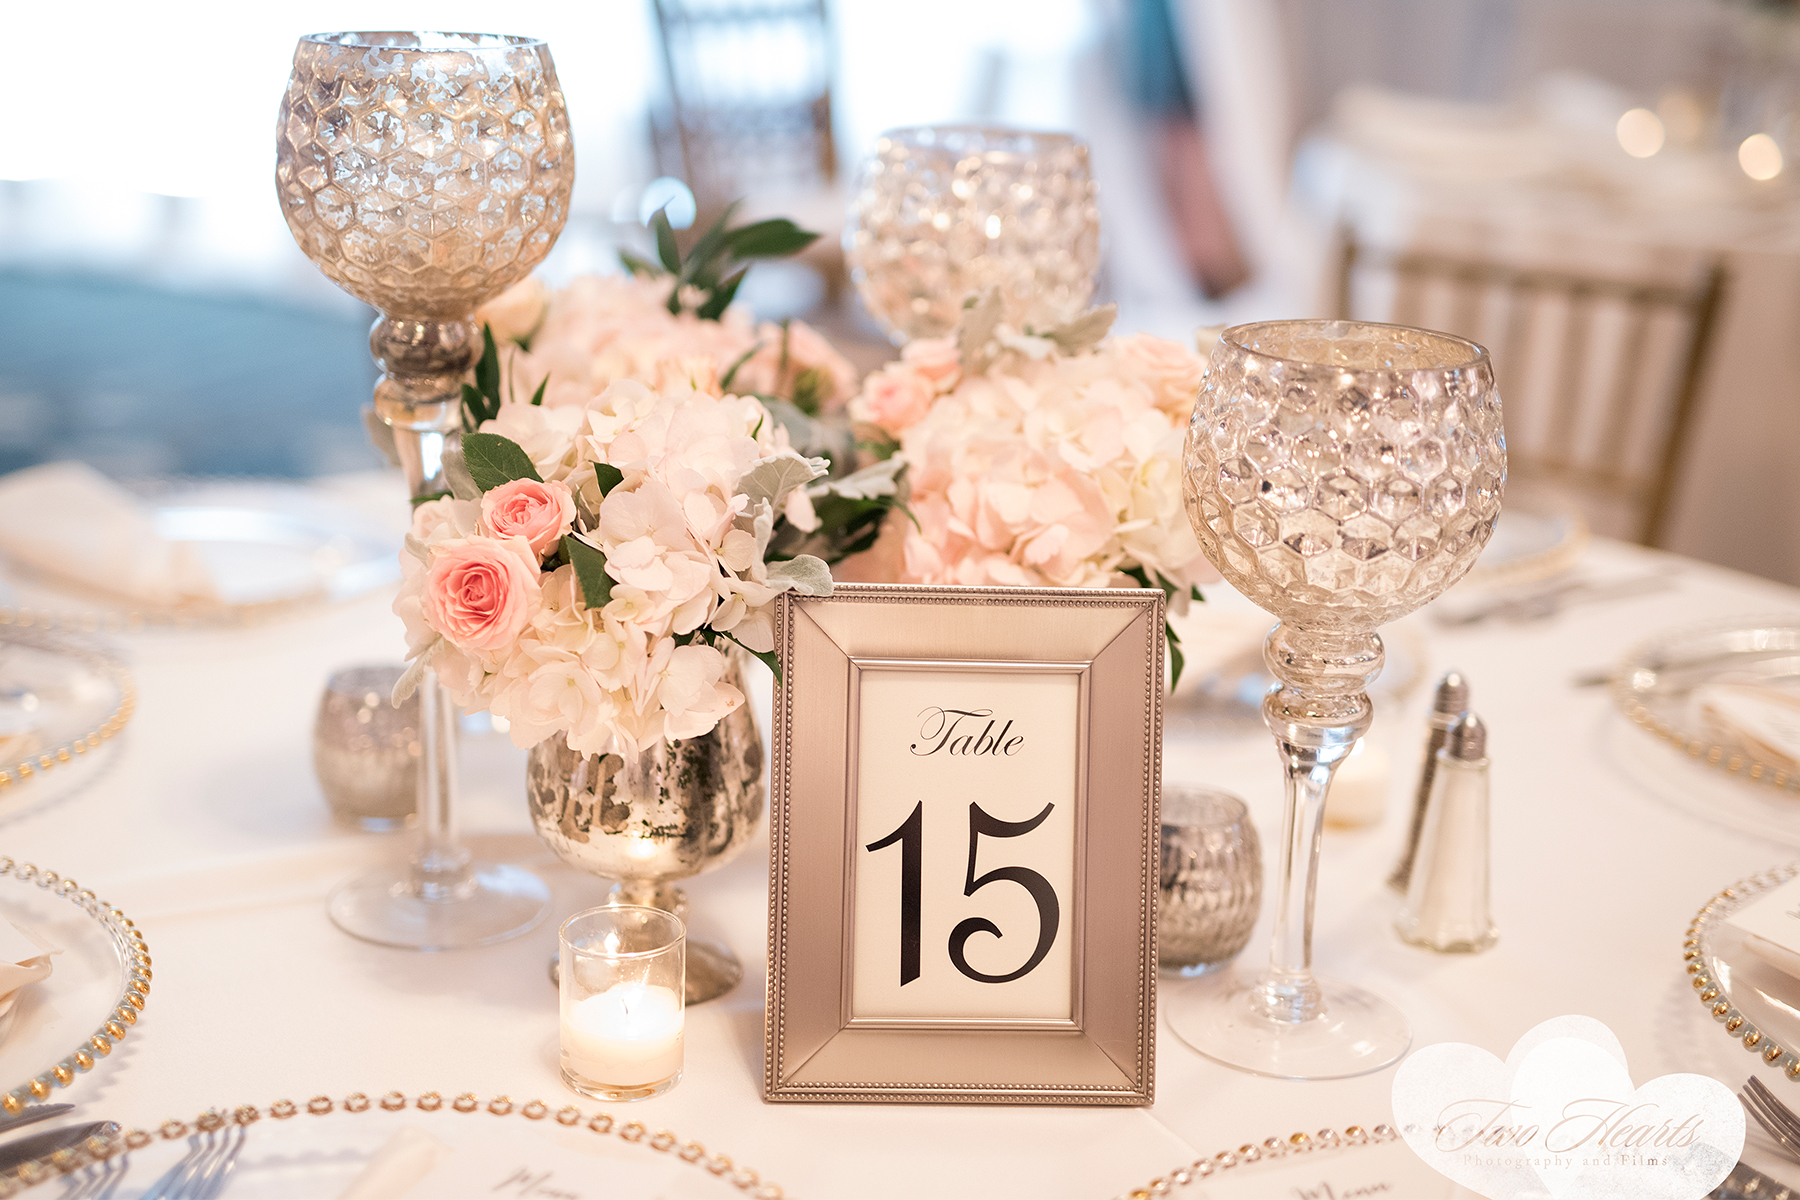 Experiencing Your Day Again With Crystal Ballroom Photography Two